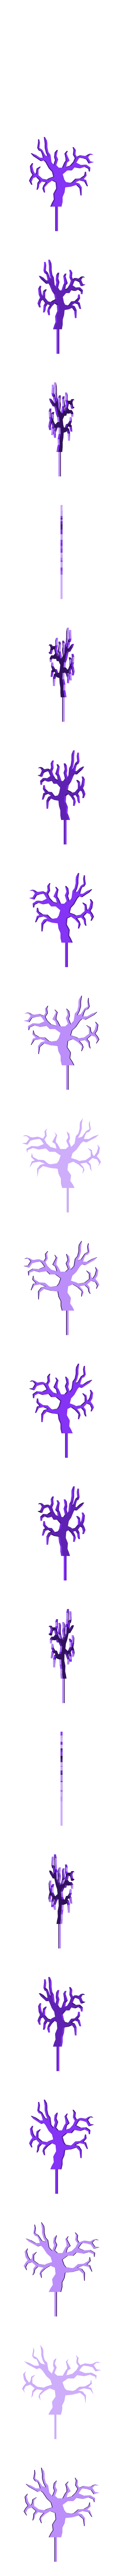 Topper - Tree.stl Download STL file Night of the living muffins • 3D printing object, InSpace